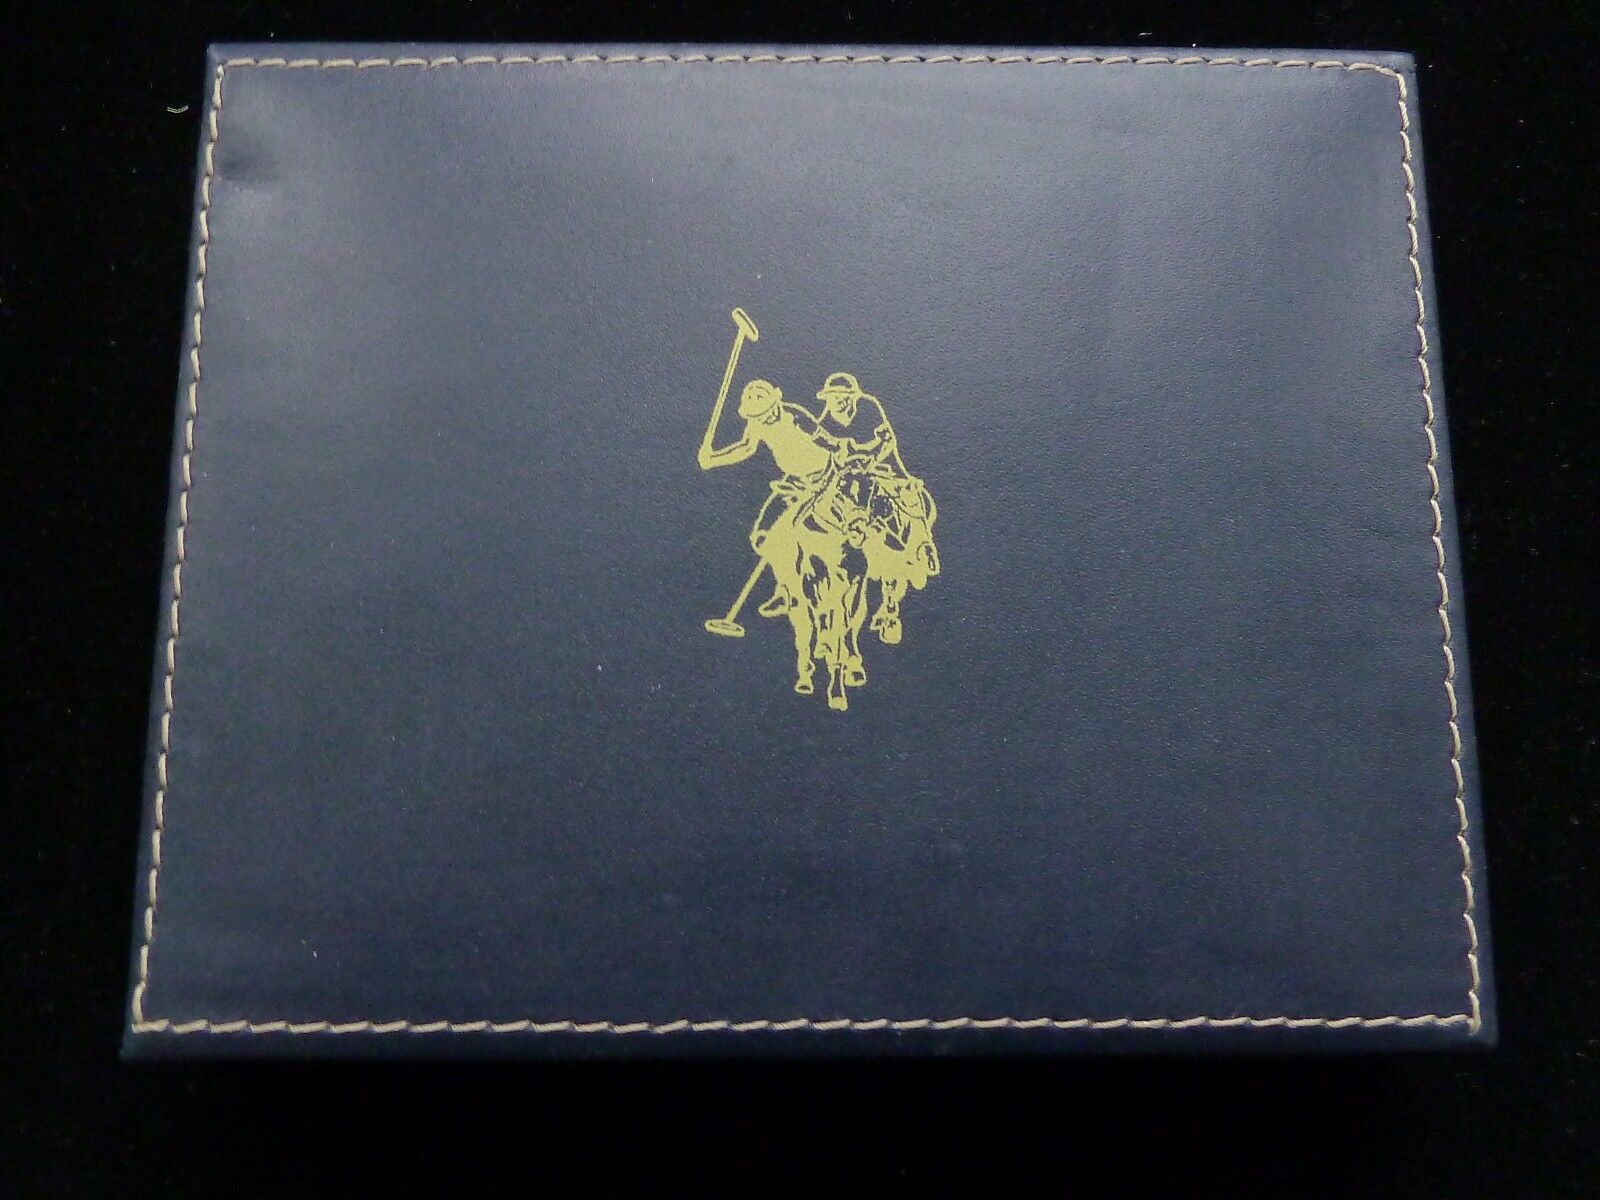 NIB US POLO ASSN Brown Passcase Billfold Wallet in Leather Valet